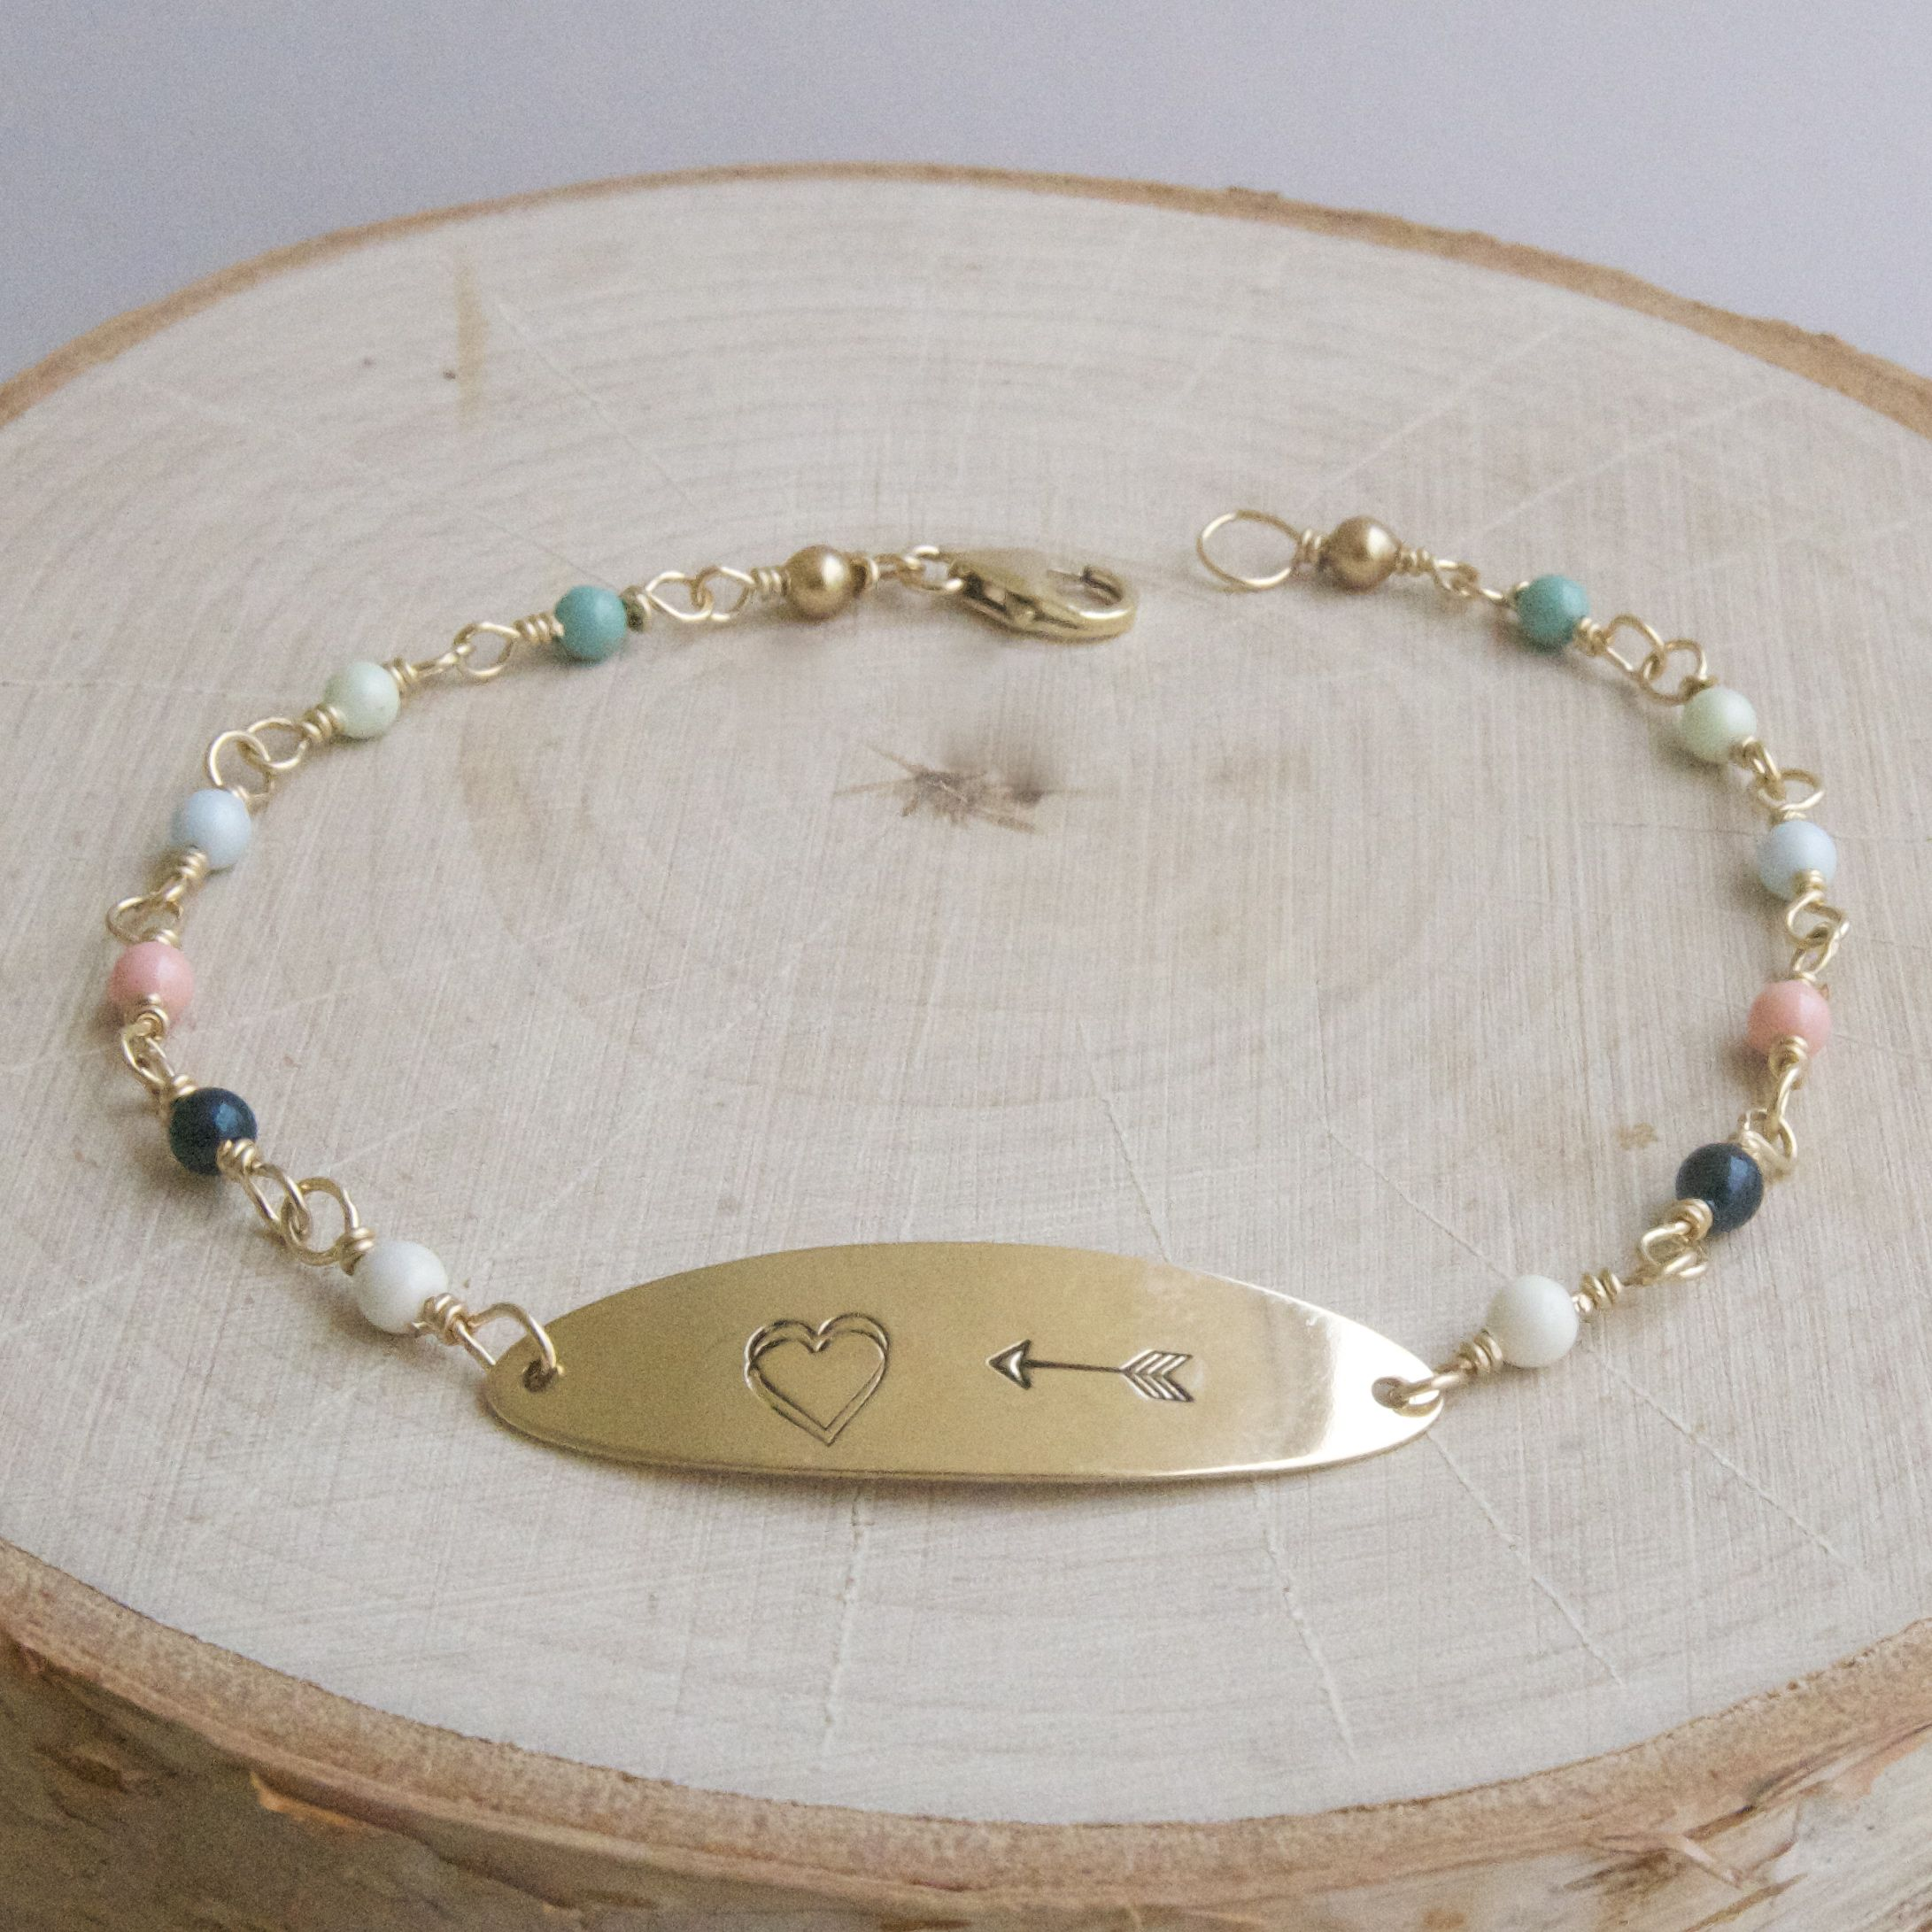 Chasing love bracelet from Bare and Me… Coming soon to www.bareandme.com